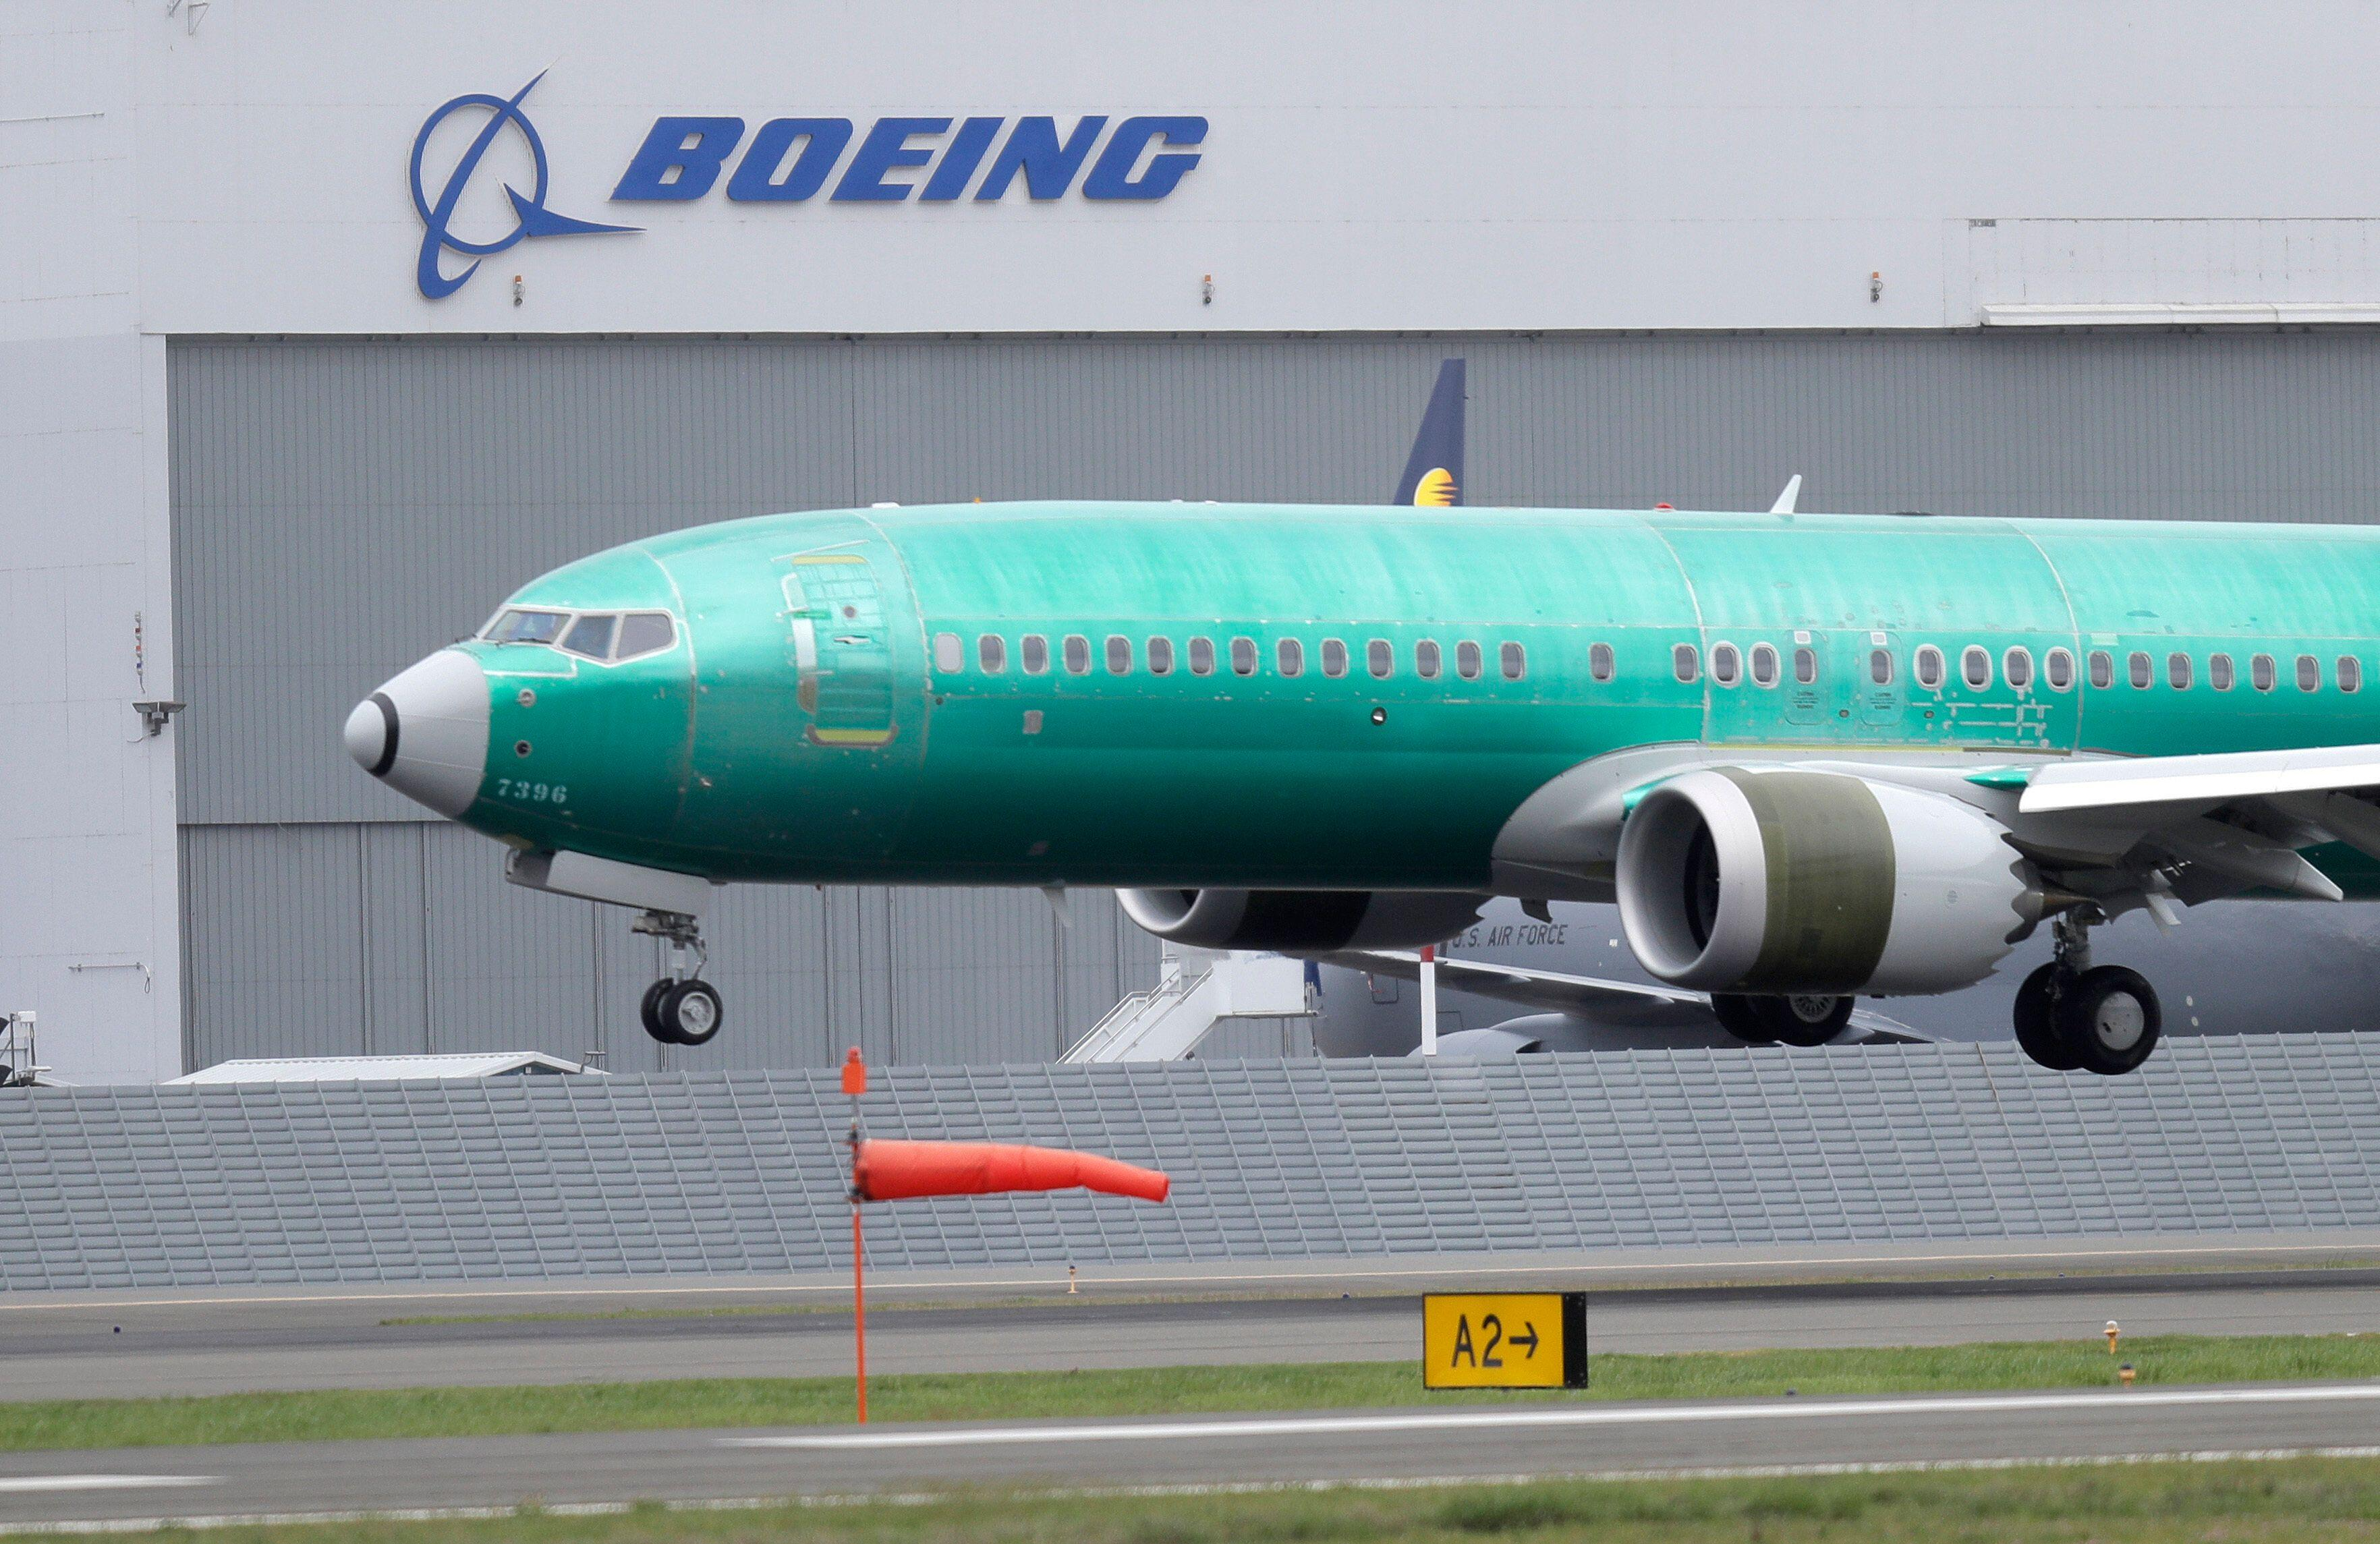 Charlie Munger: Of course, I would fly in a Boeing 737 MAX